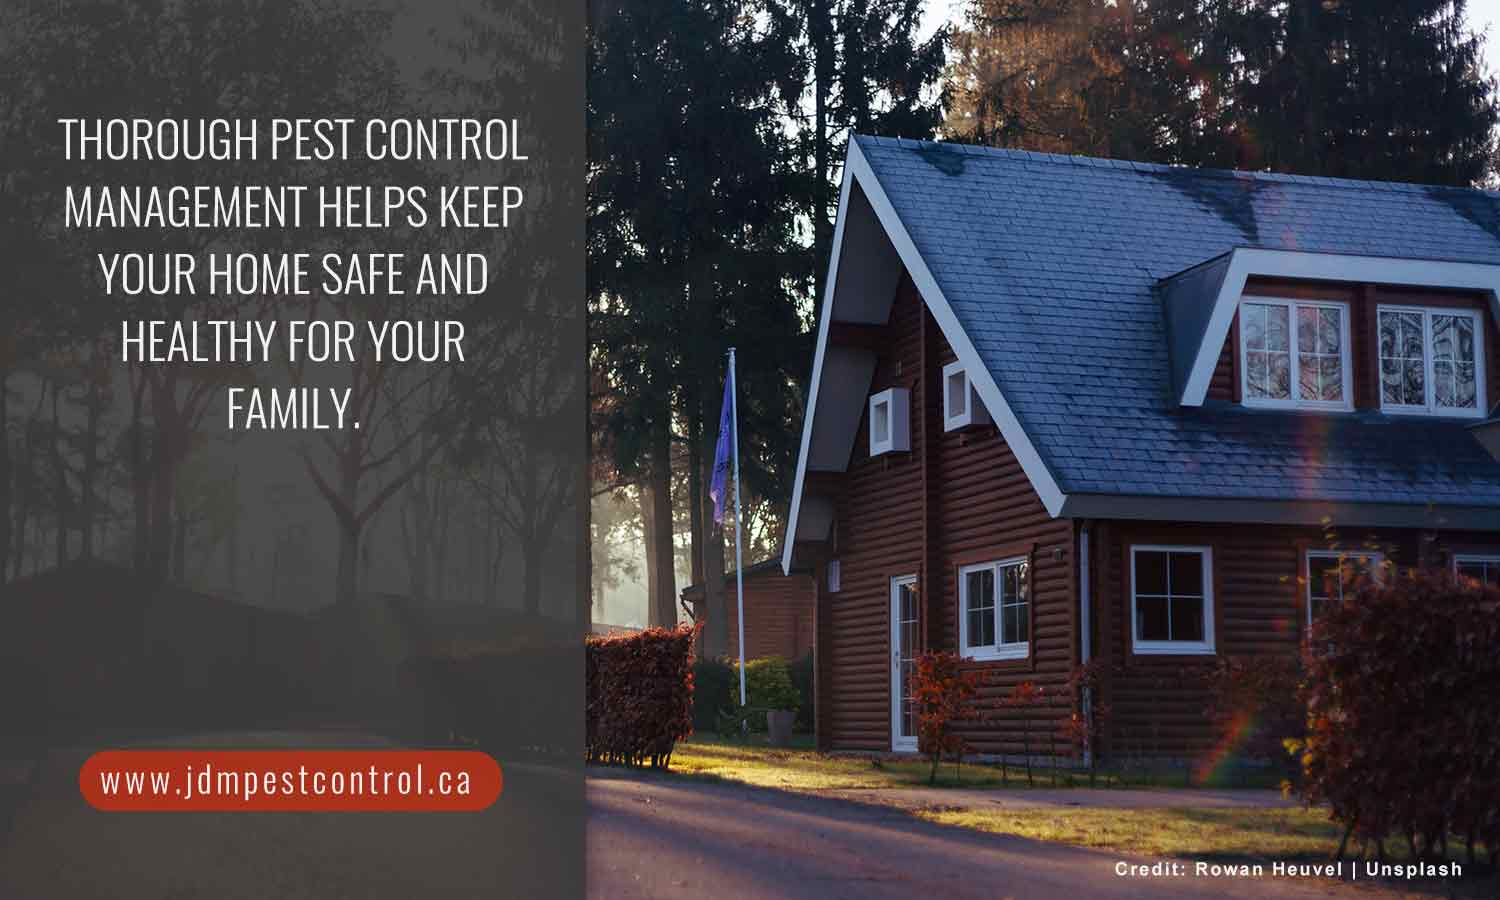 Thorough pest control management helps keep your home safe and healthy for your family.